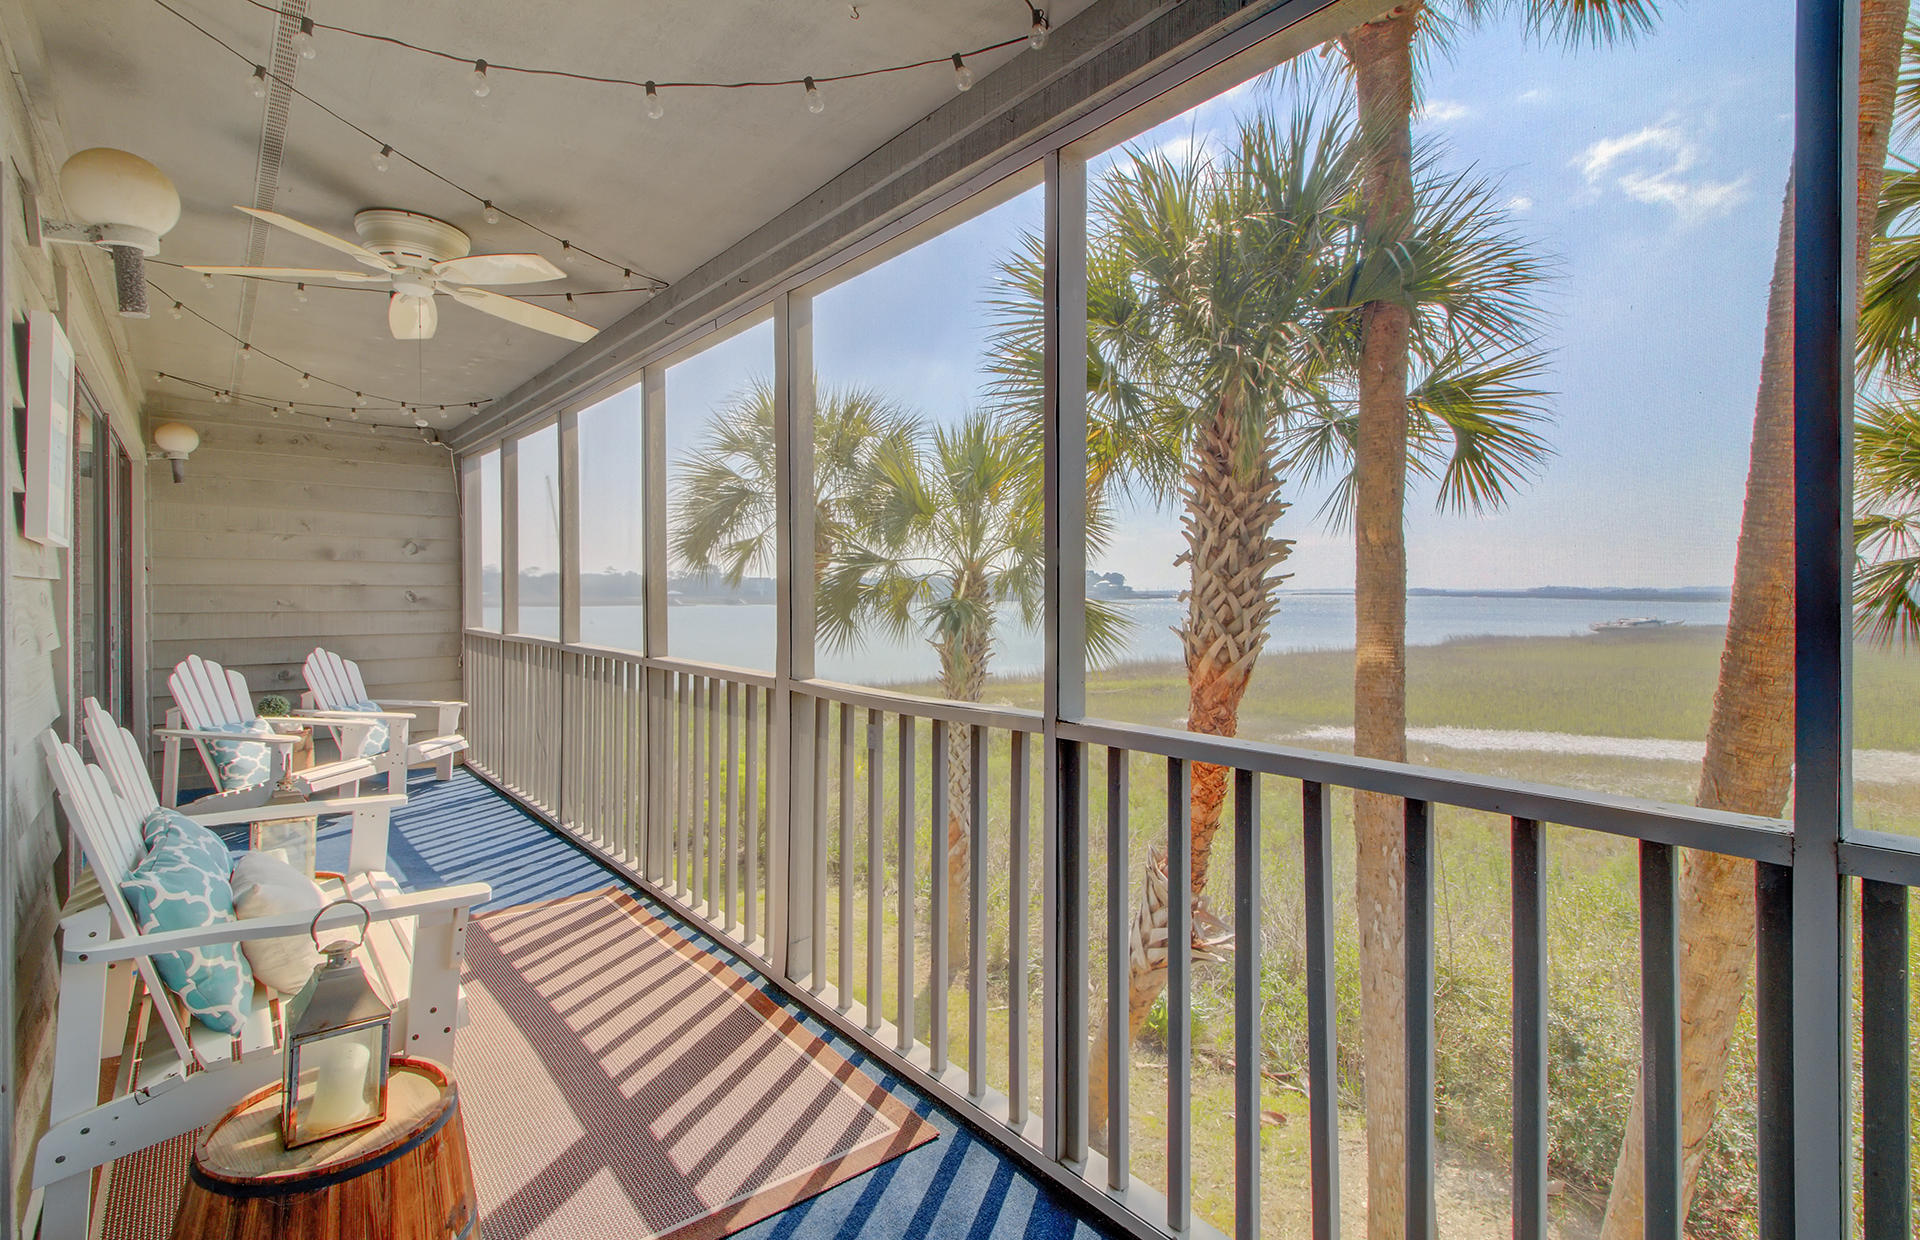 Mariners Cay Homes For Sale - 90 Mariners Cay, Folly Beach, SC - 3